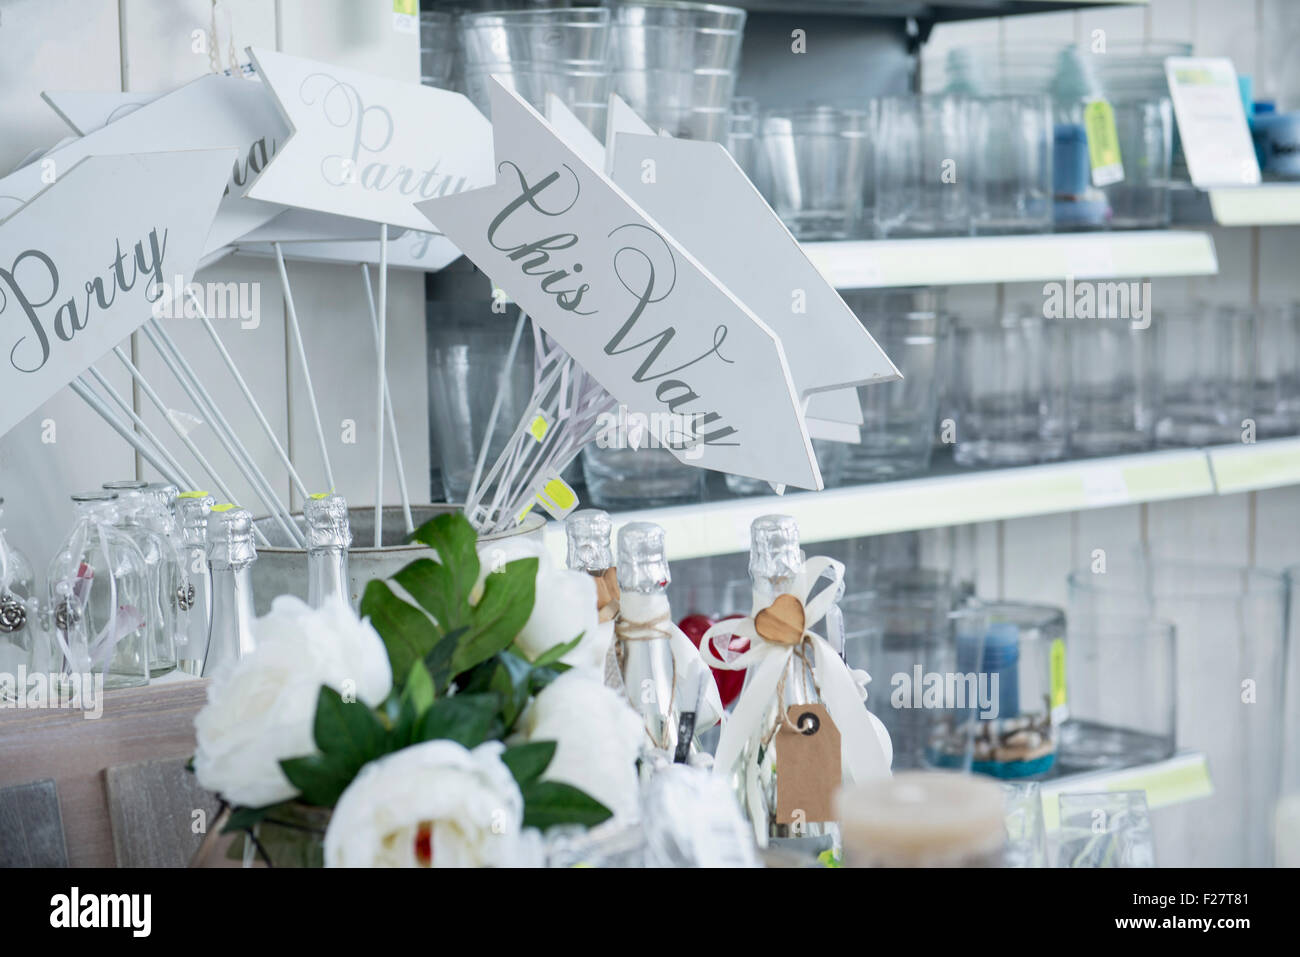 Showpieces and vases in garden centre for sale, Augsburg, Bavaria, Germany - Stock Image